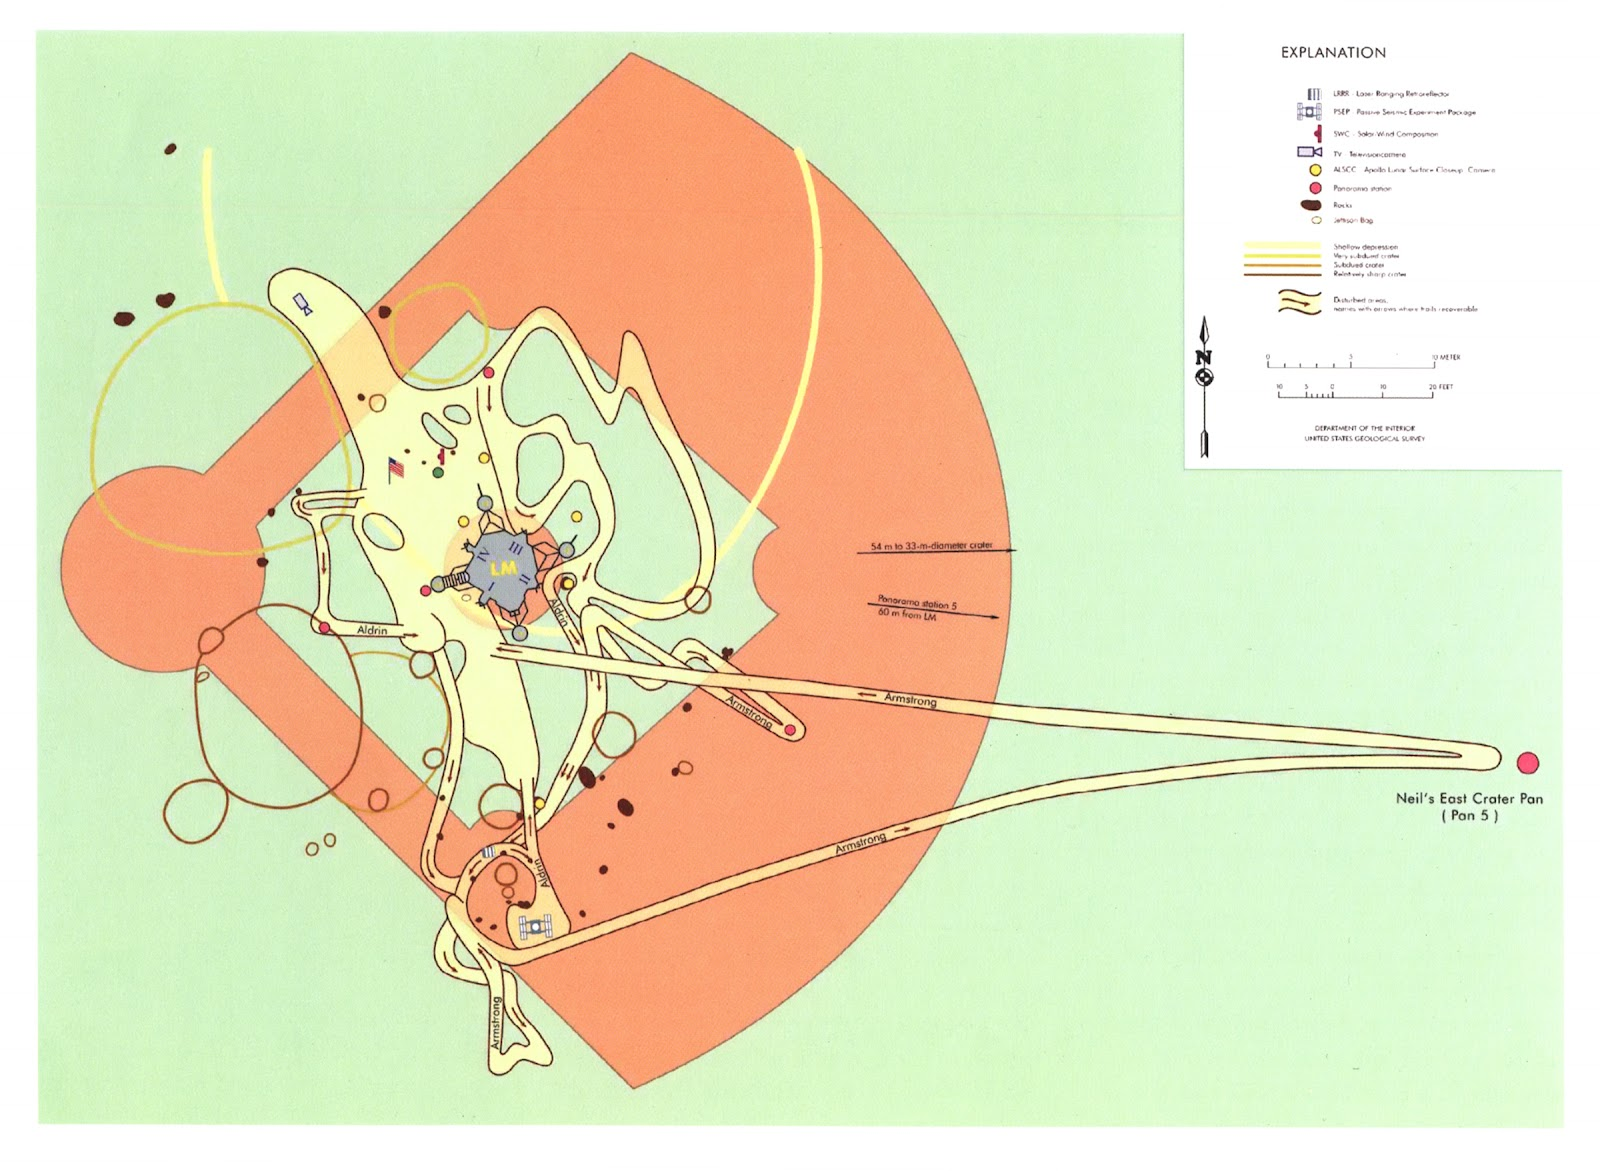 map of neil armstrong where he explored -#main